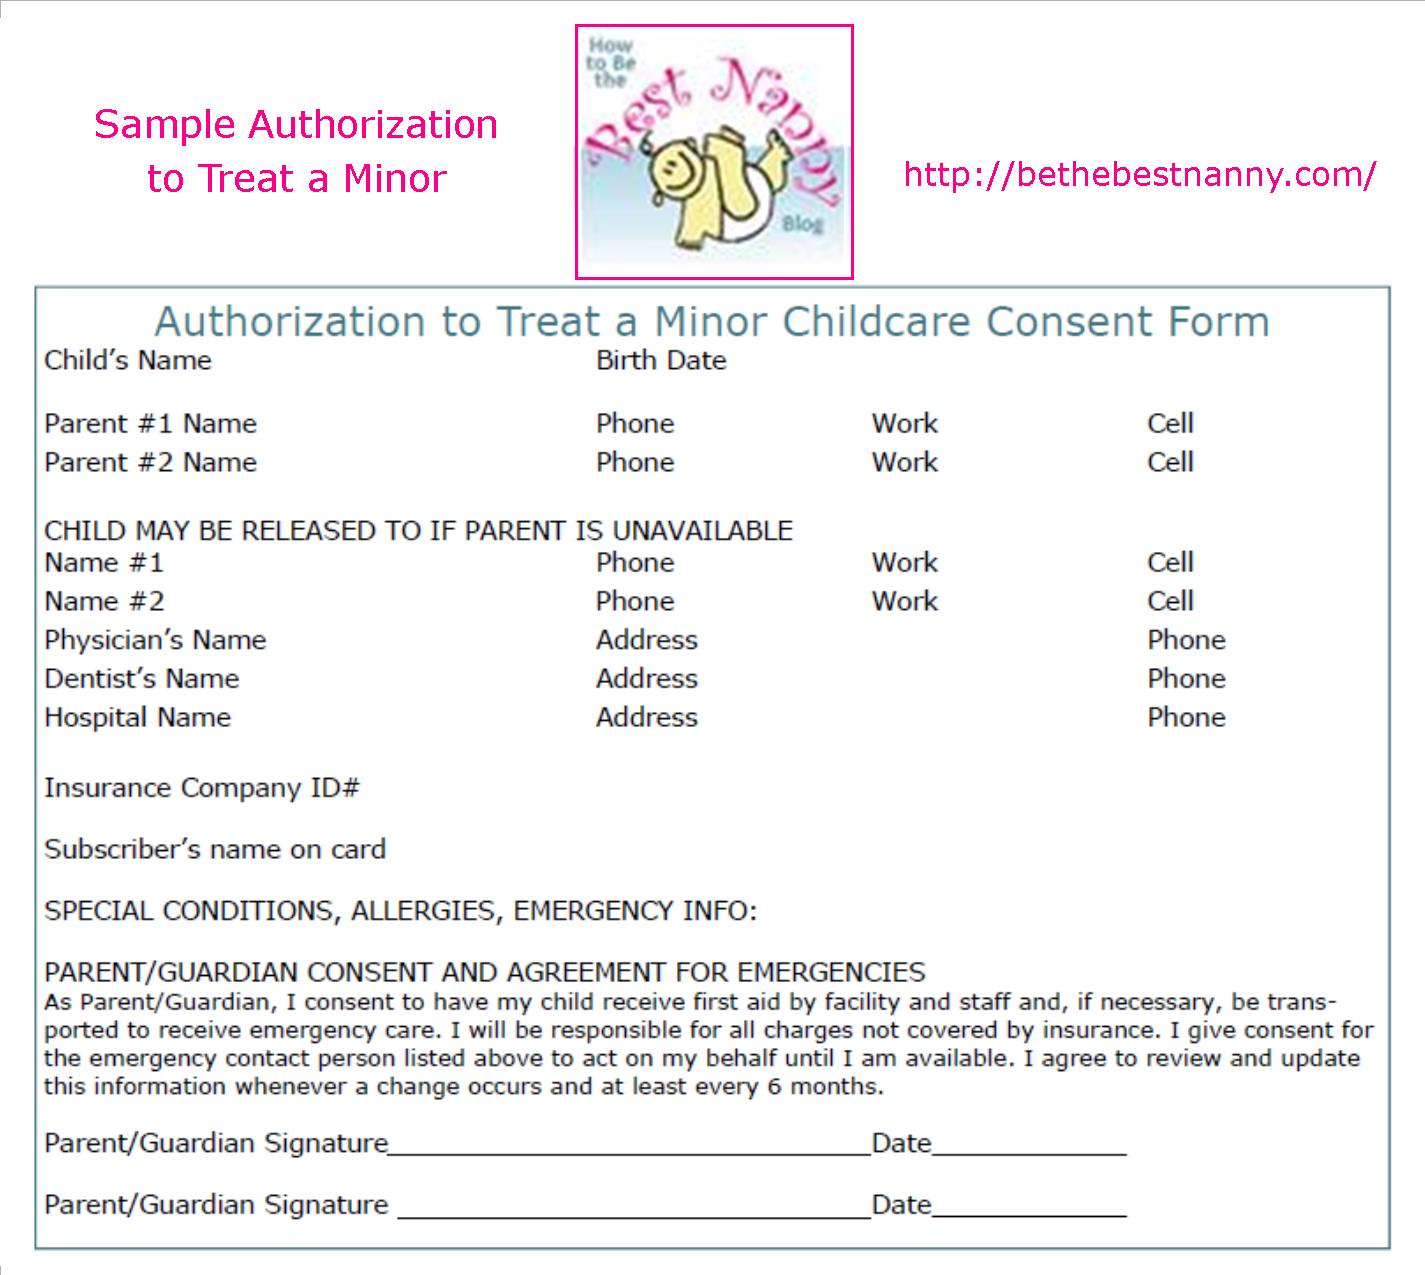 Have The Parents Signed An Authorization To Treat A Minor Consent Form?